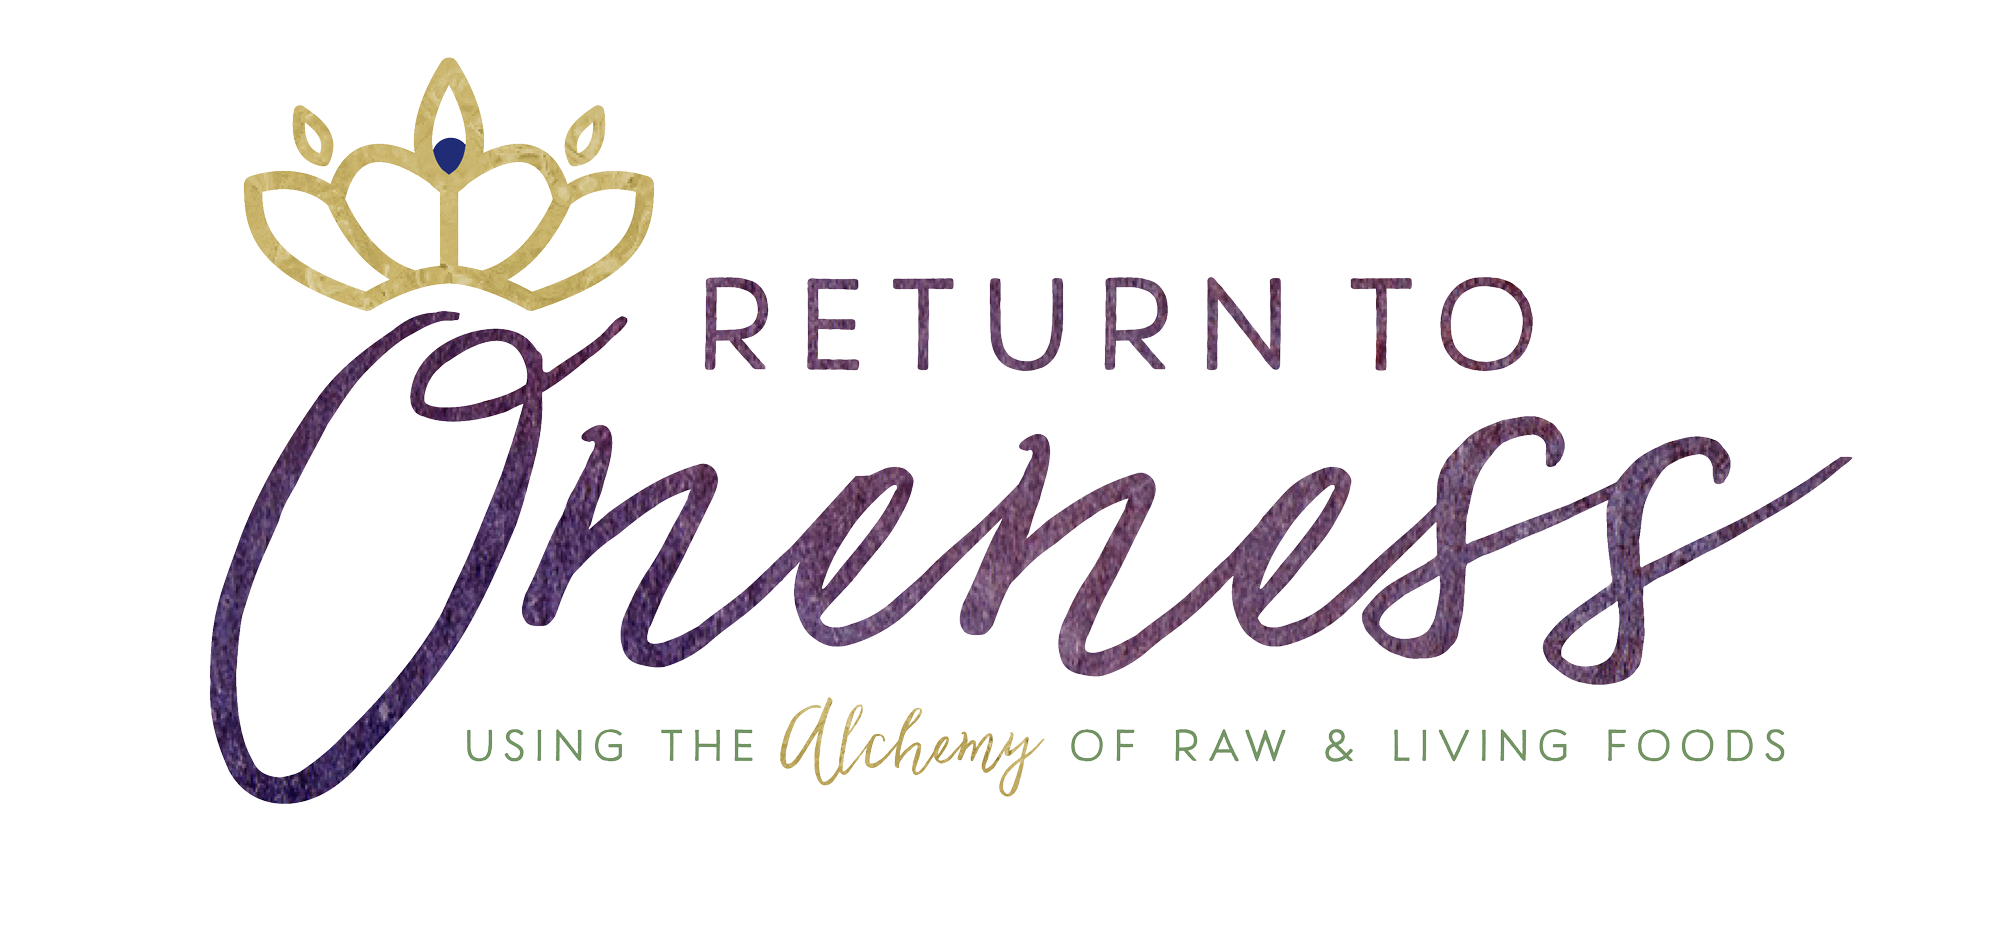 Return To Oneness